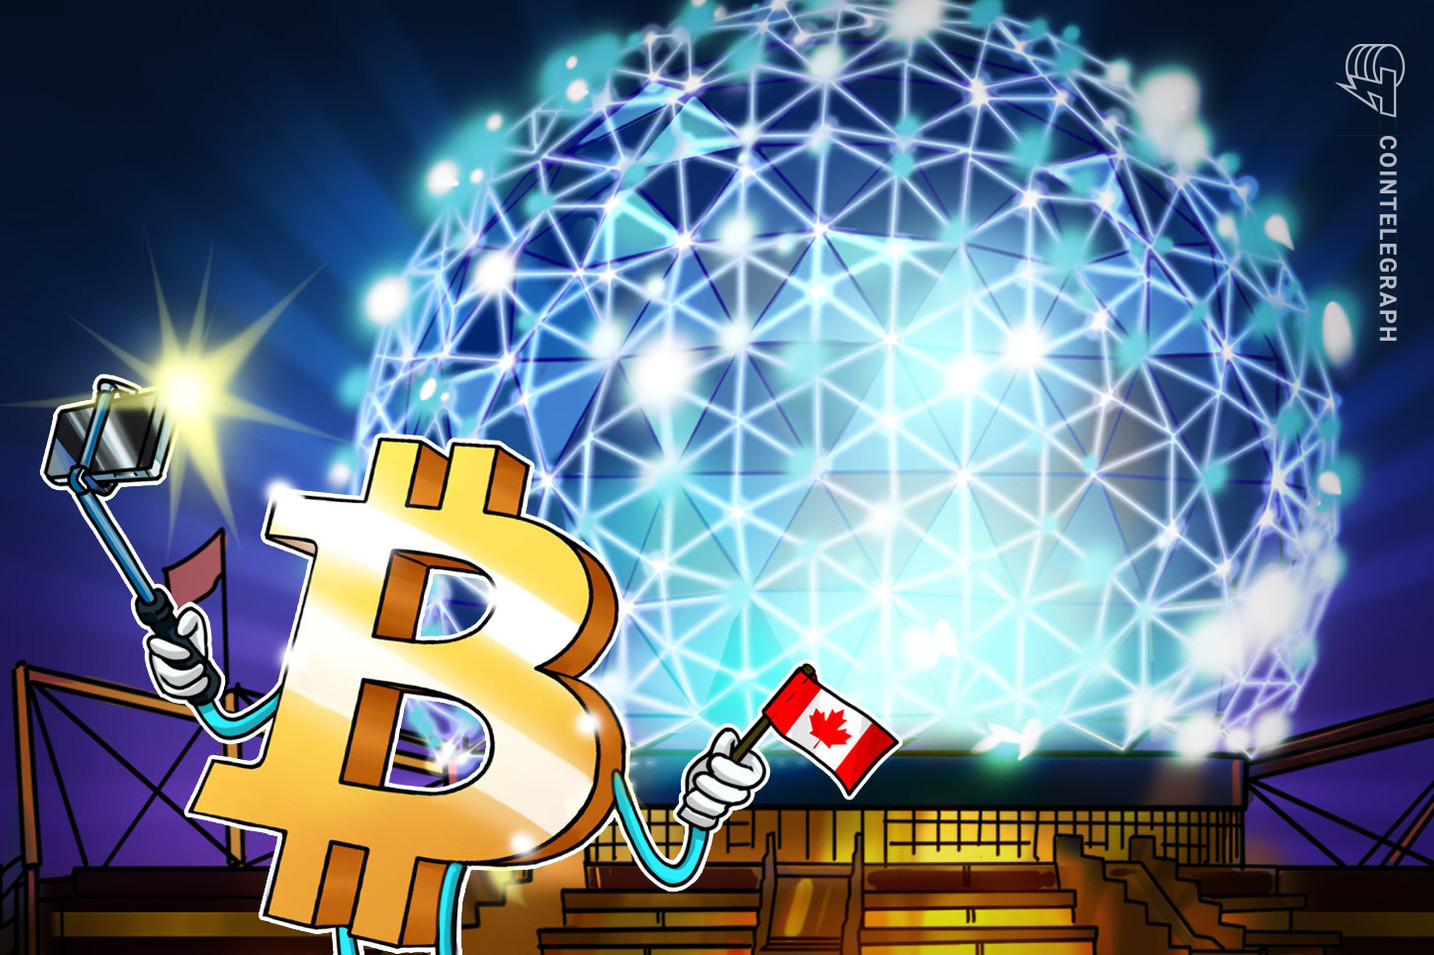 Bitcoin ETF from 3iQ and Coinshares goes live in Canada